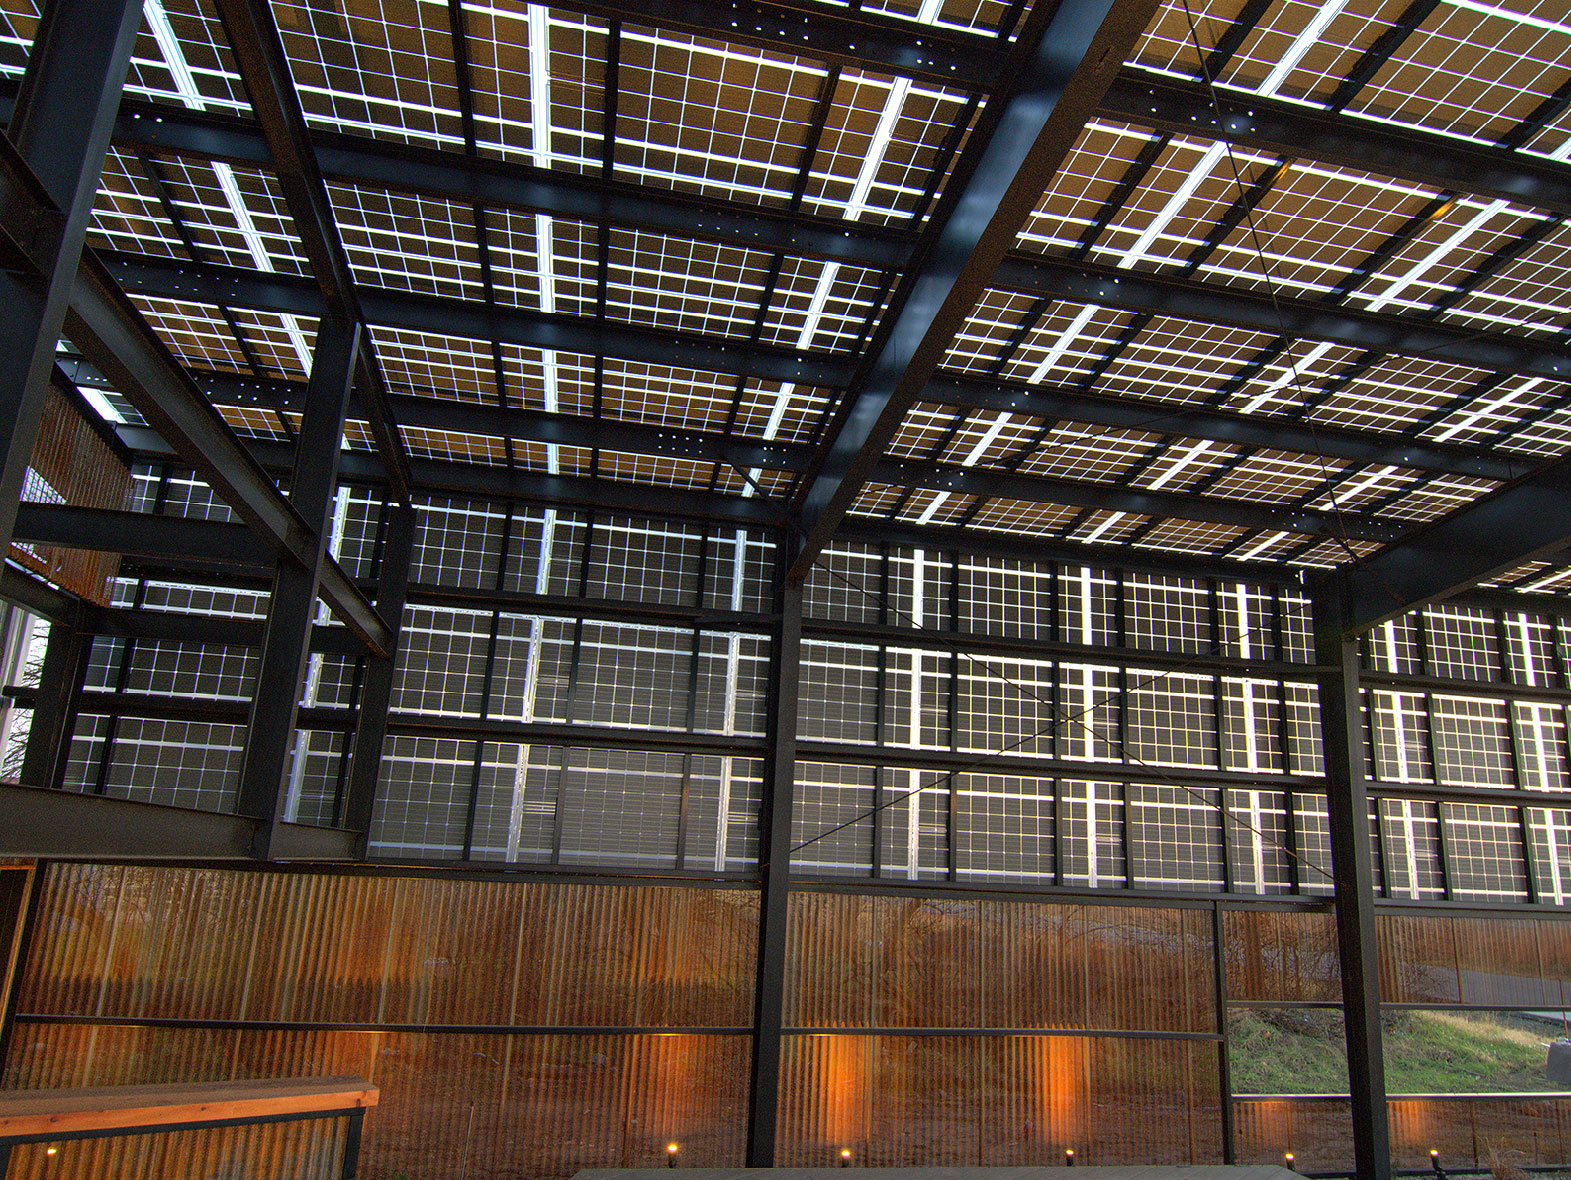 solar canopy that fully powers our production facility